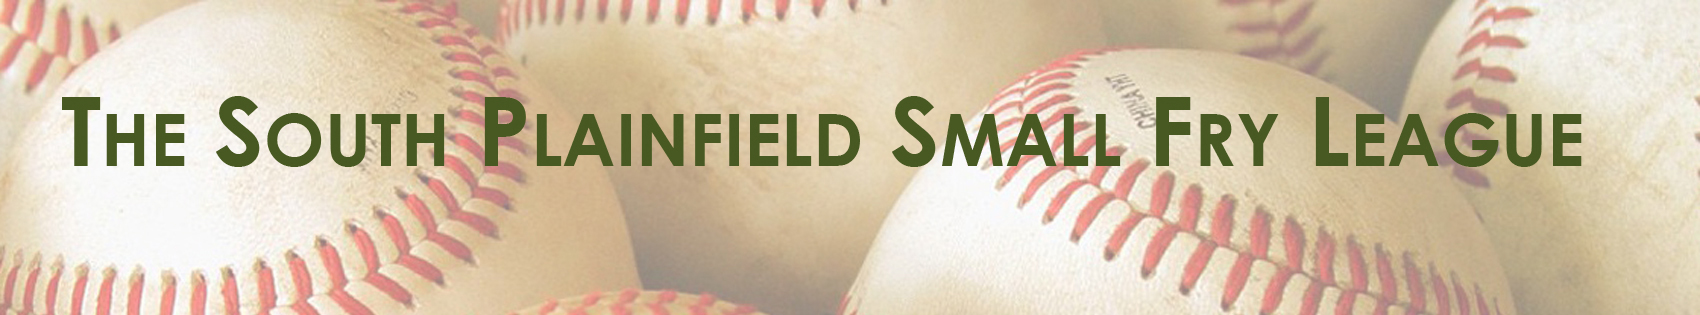 The South Plainfield Small Fry League